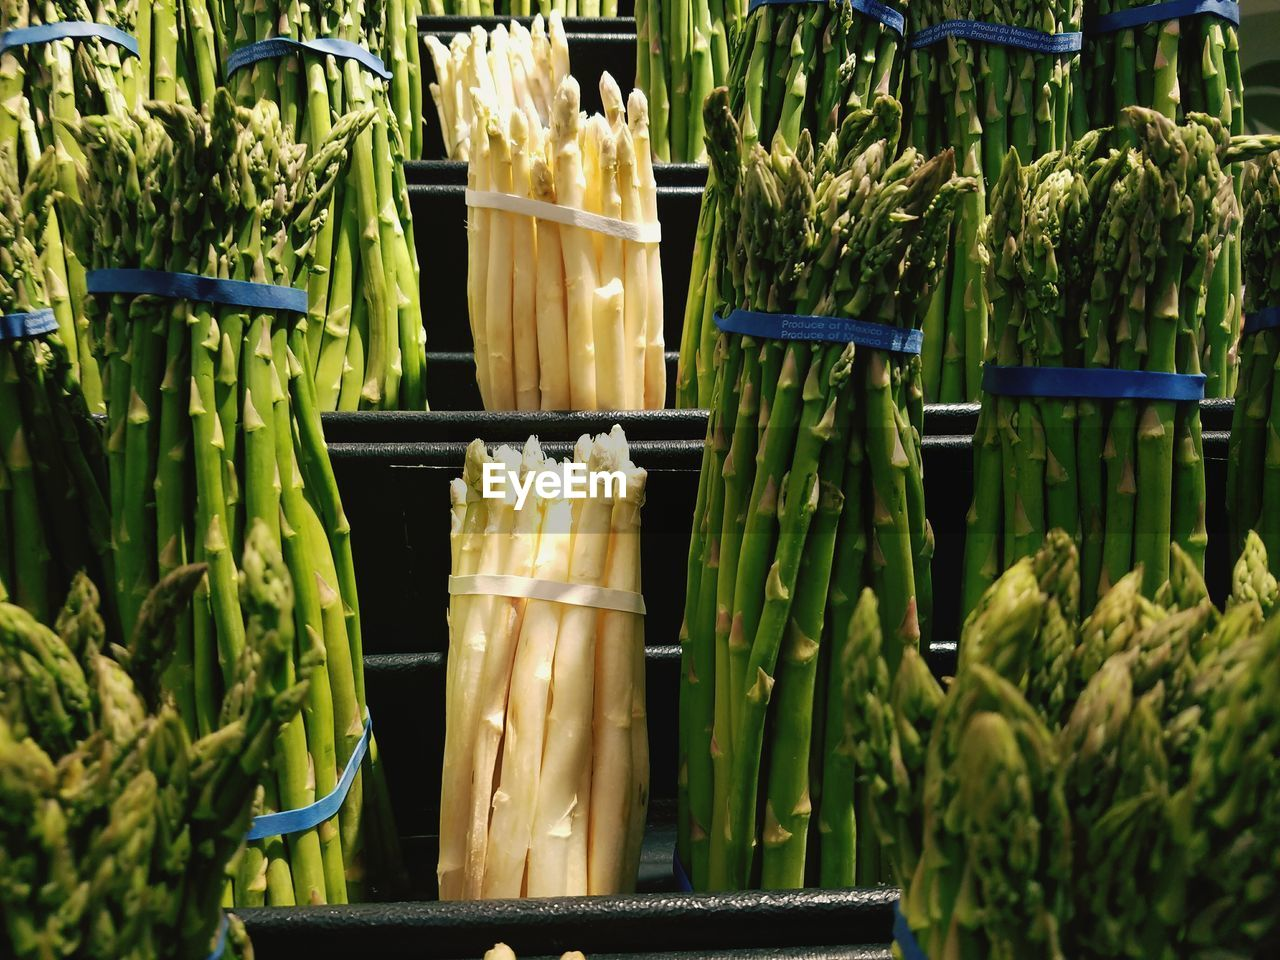 Bunch of asparagus for sale at market stall